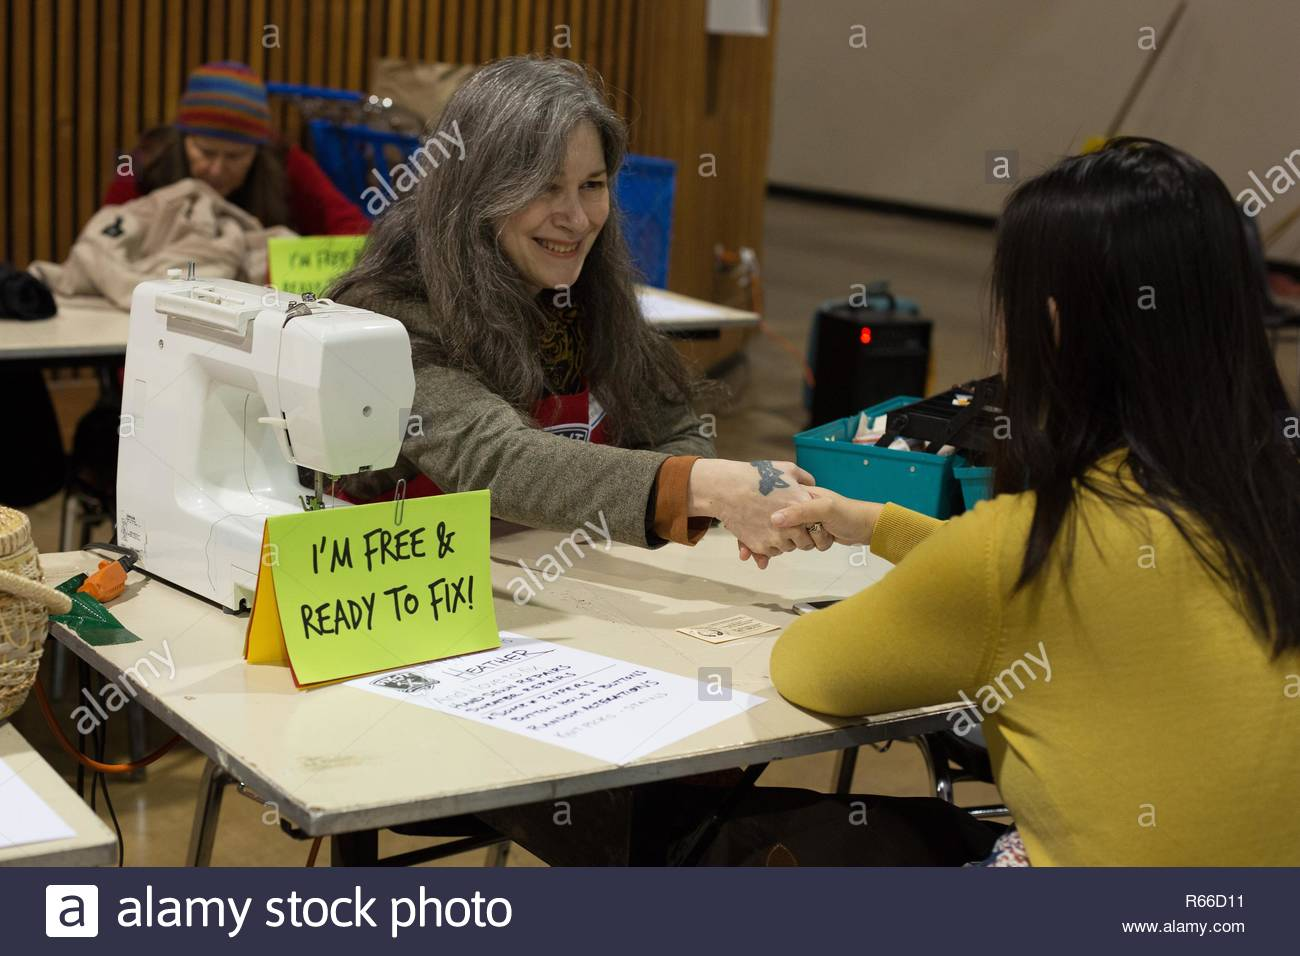 A volunteer 'fixer' greets a visitor to the Fix It Fair in Eugene, Oregon, USA. - Stock Image